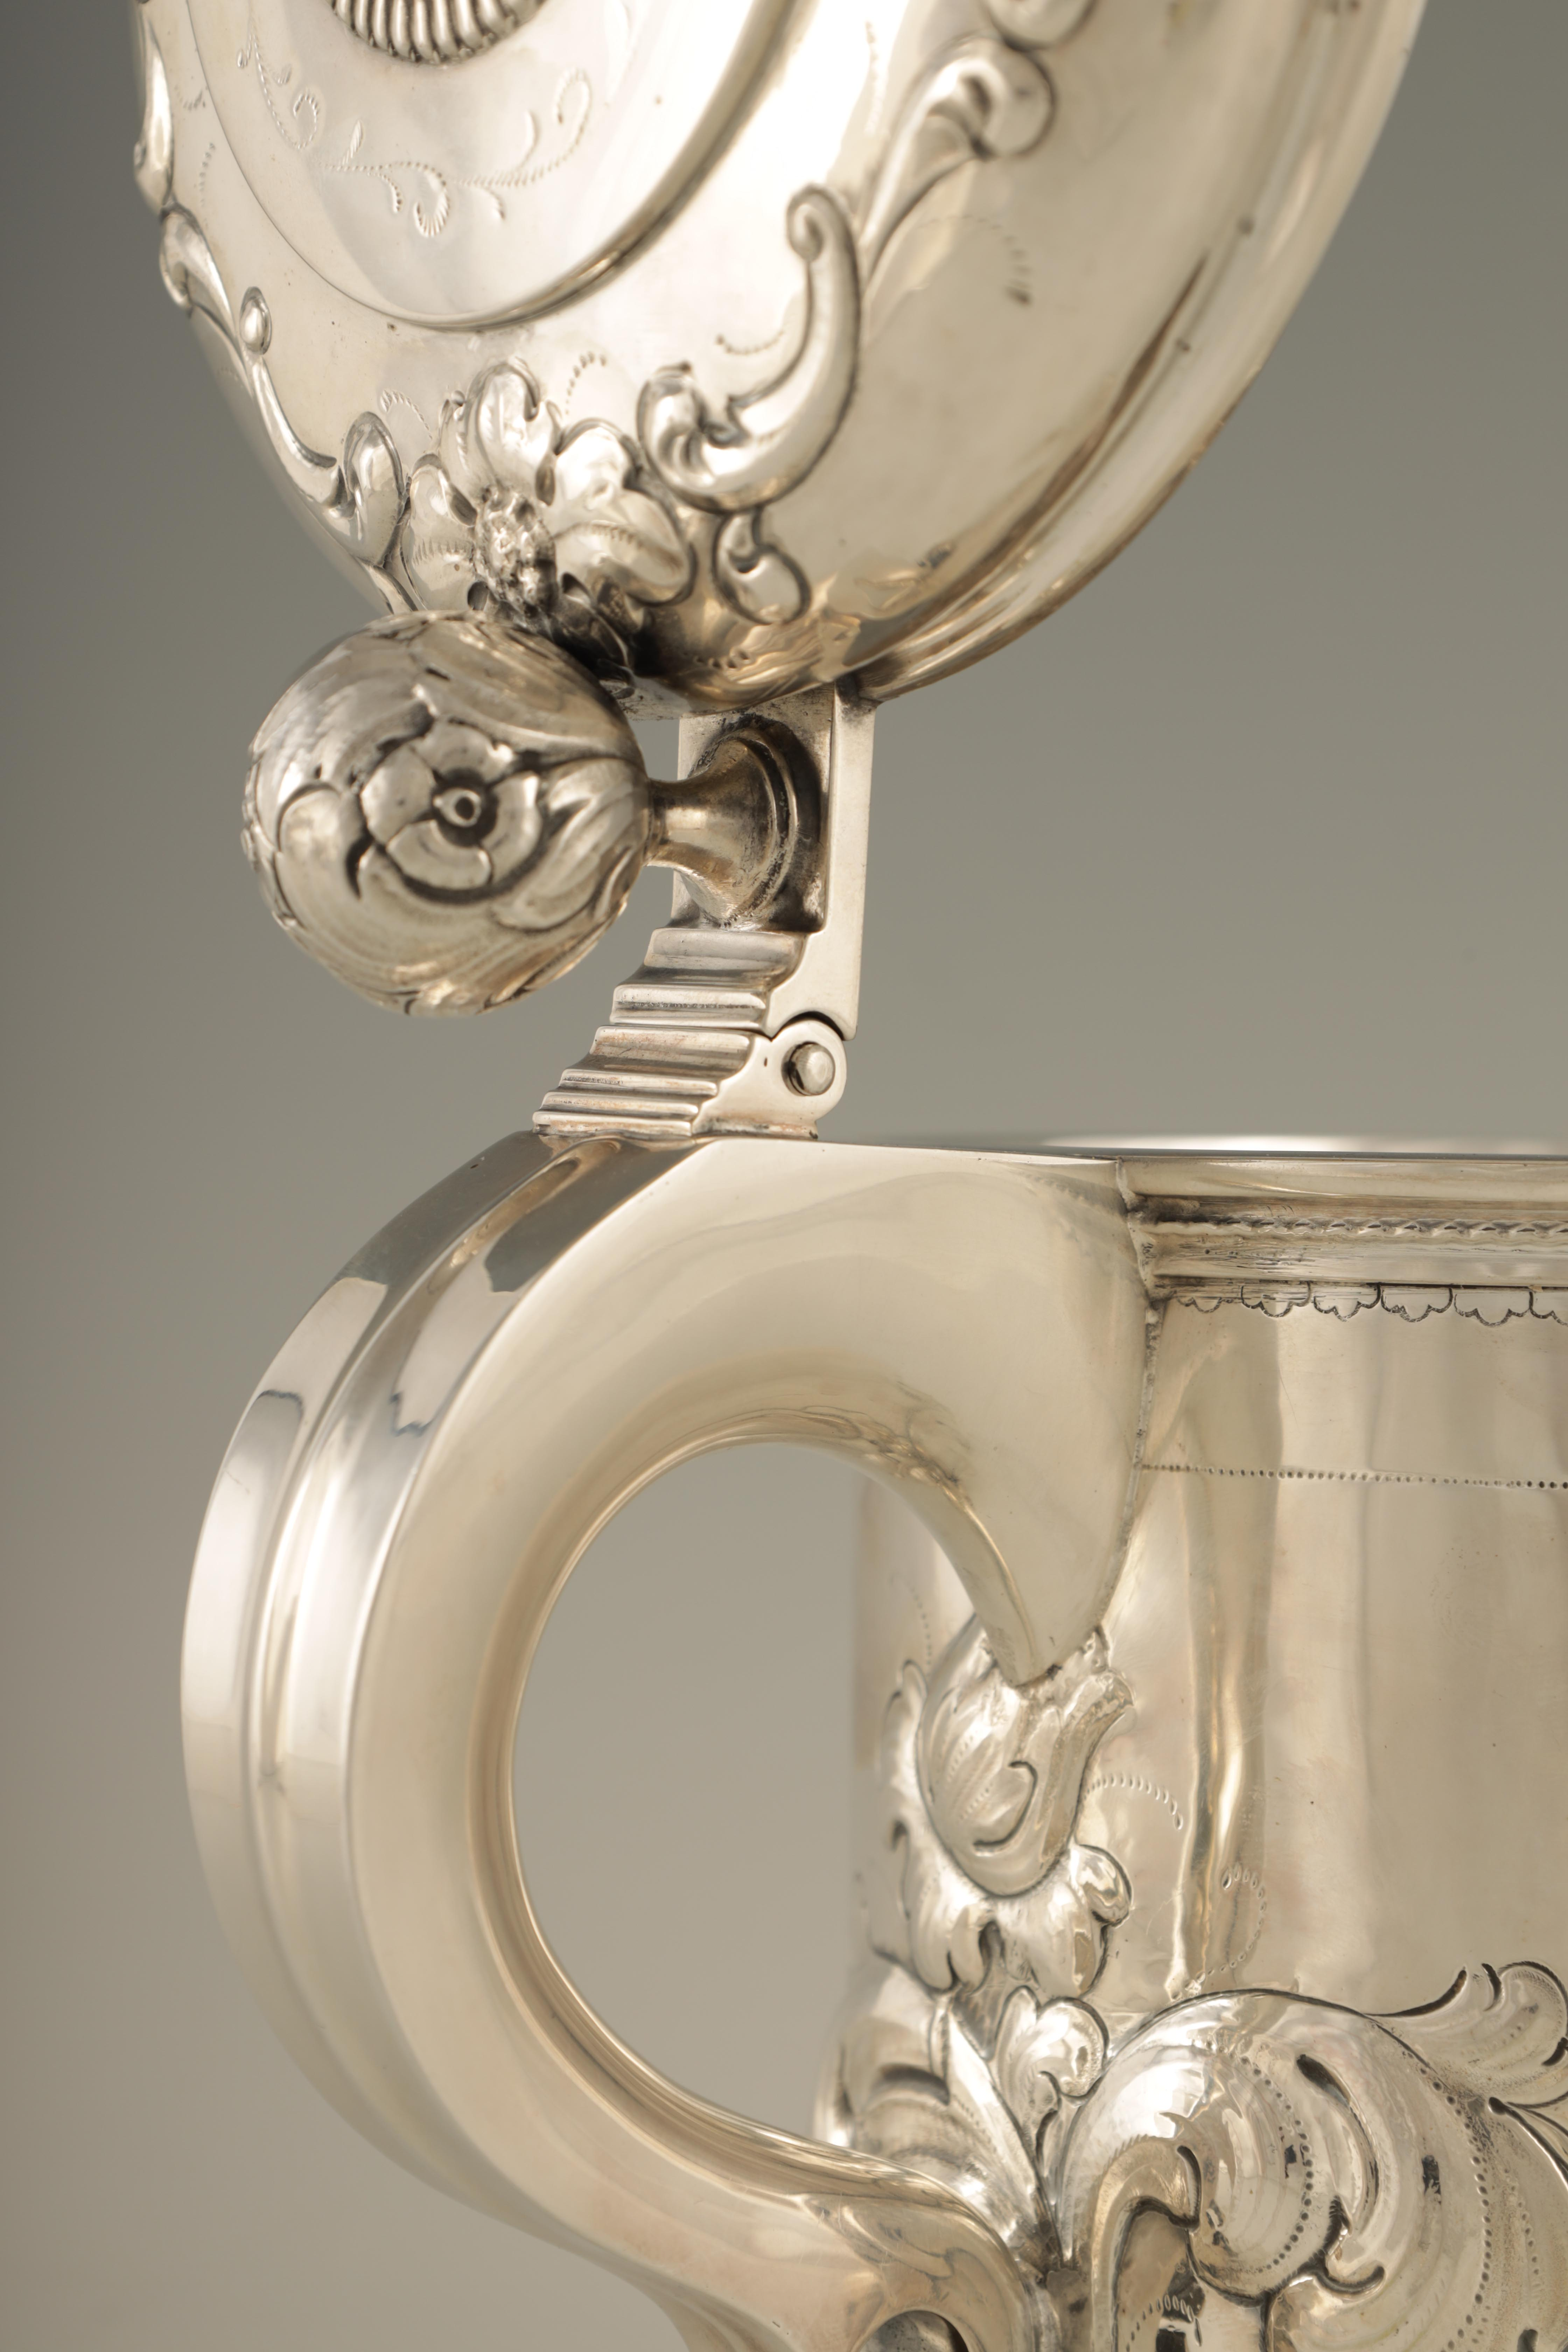 AN IMPRESSIVE EARLY 20TH CENTURY SWEDISH SILVER TANKARD with embossed ball finial to the hinged - Image 5 of 8